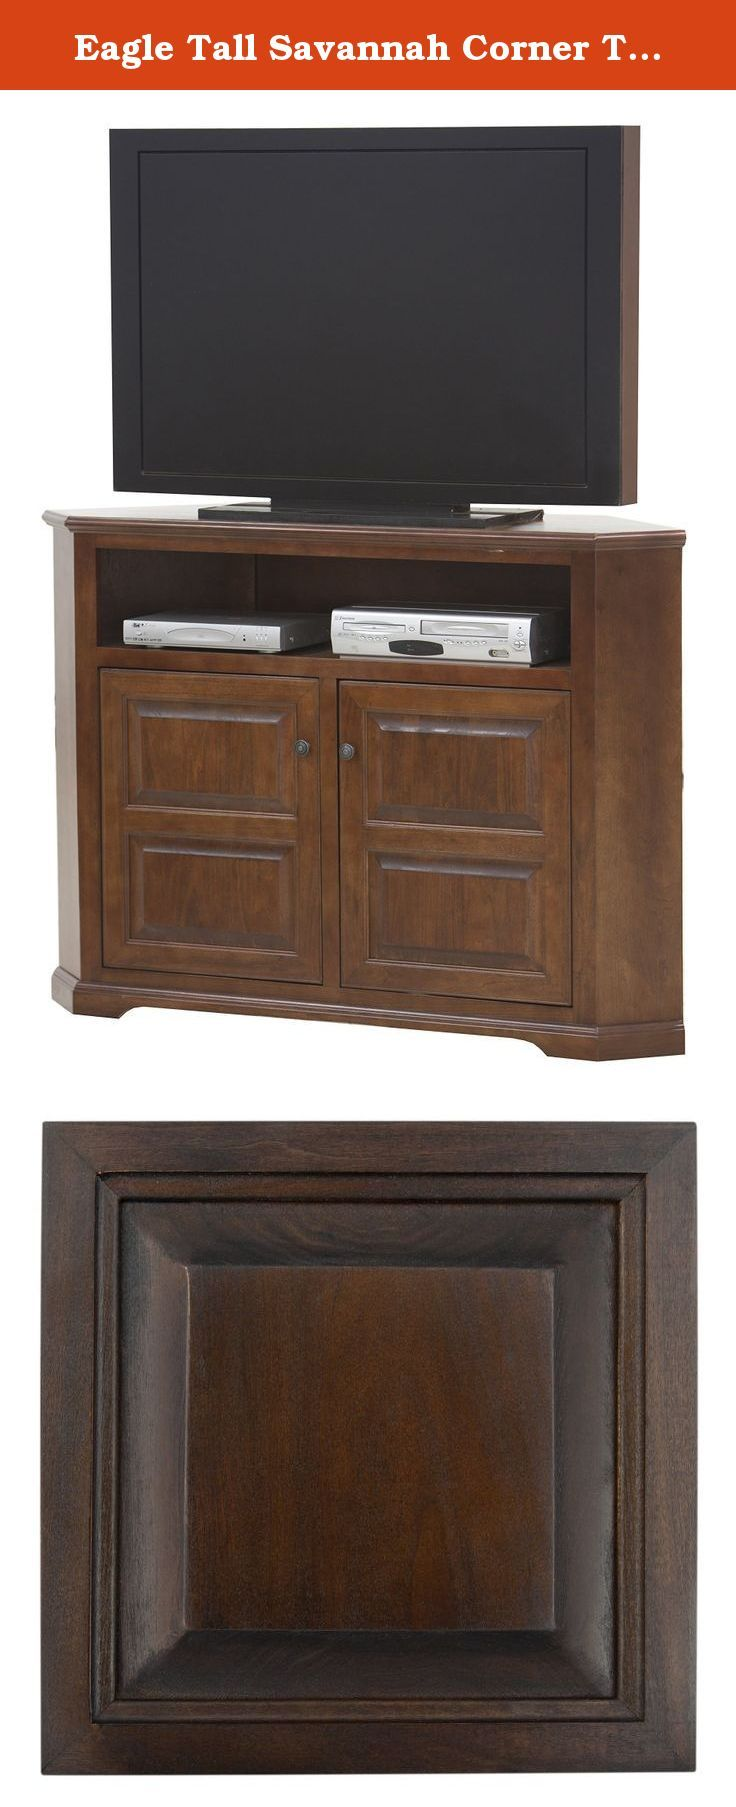 78 Best Ideas About Tall Corner Tv Stand On Pinterest Corner Media Cabinet Corner Tv Console